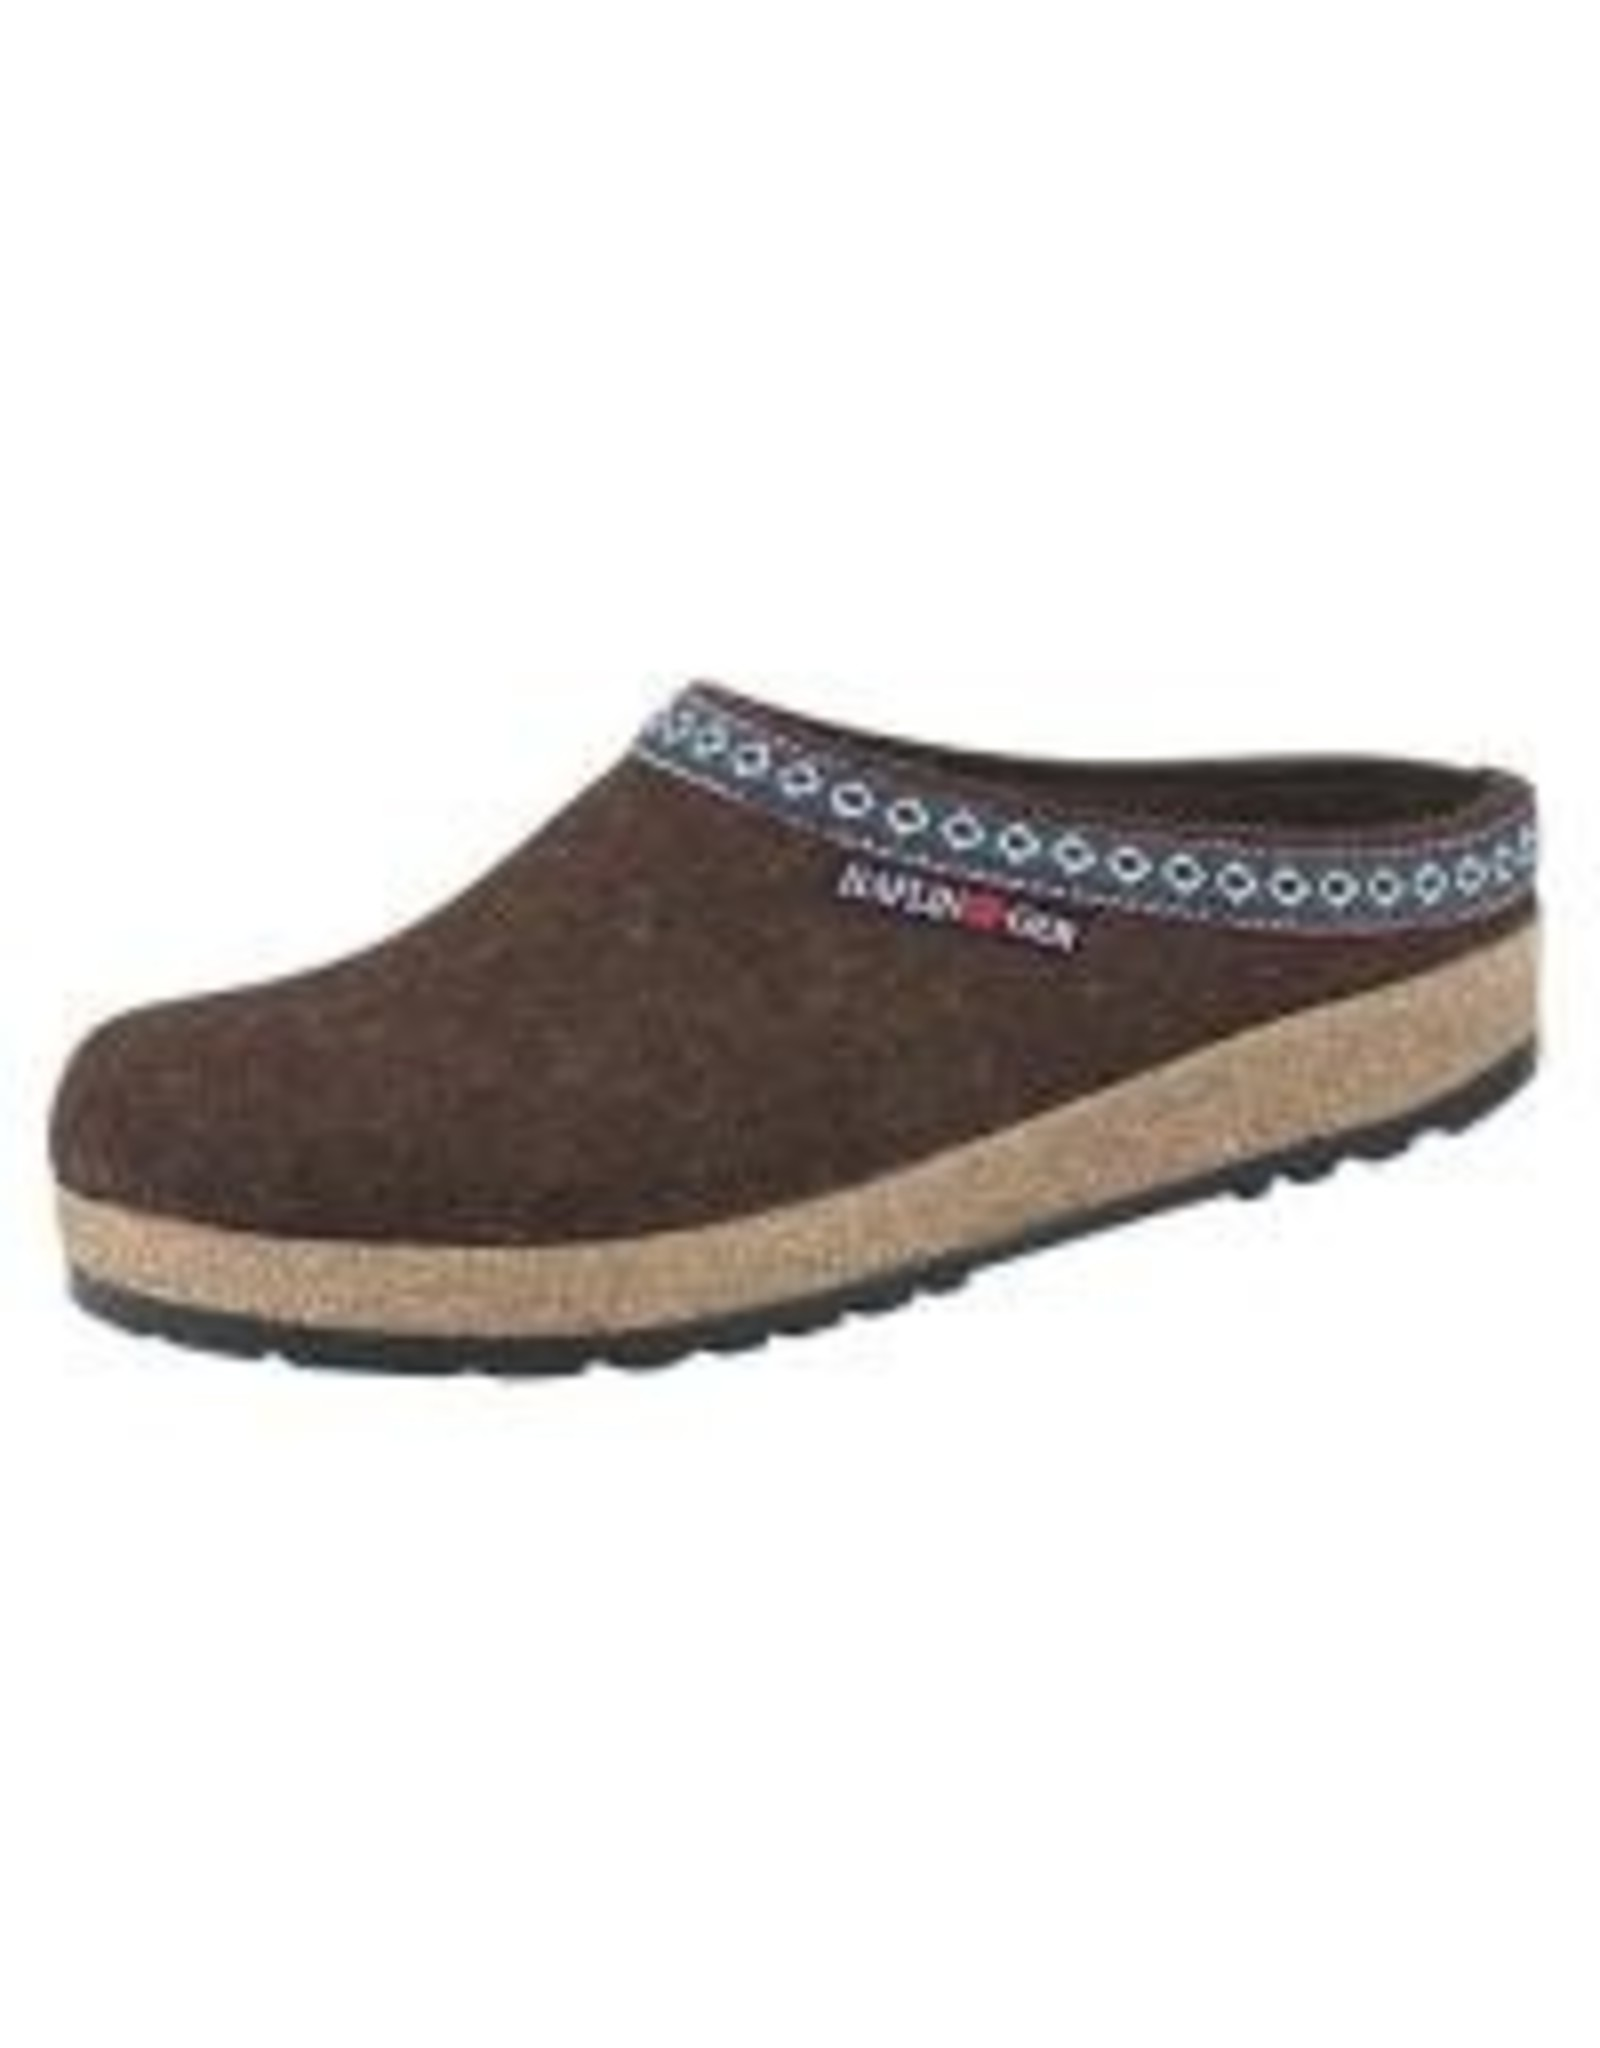 Wool Felt Chocolate Grizzy Clog